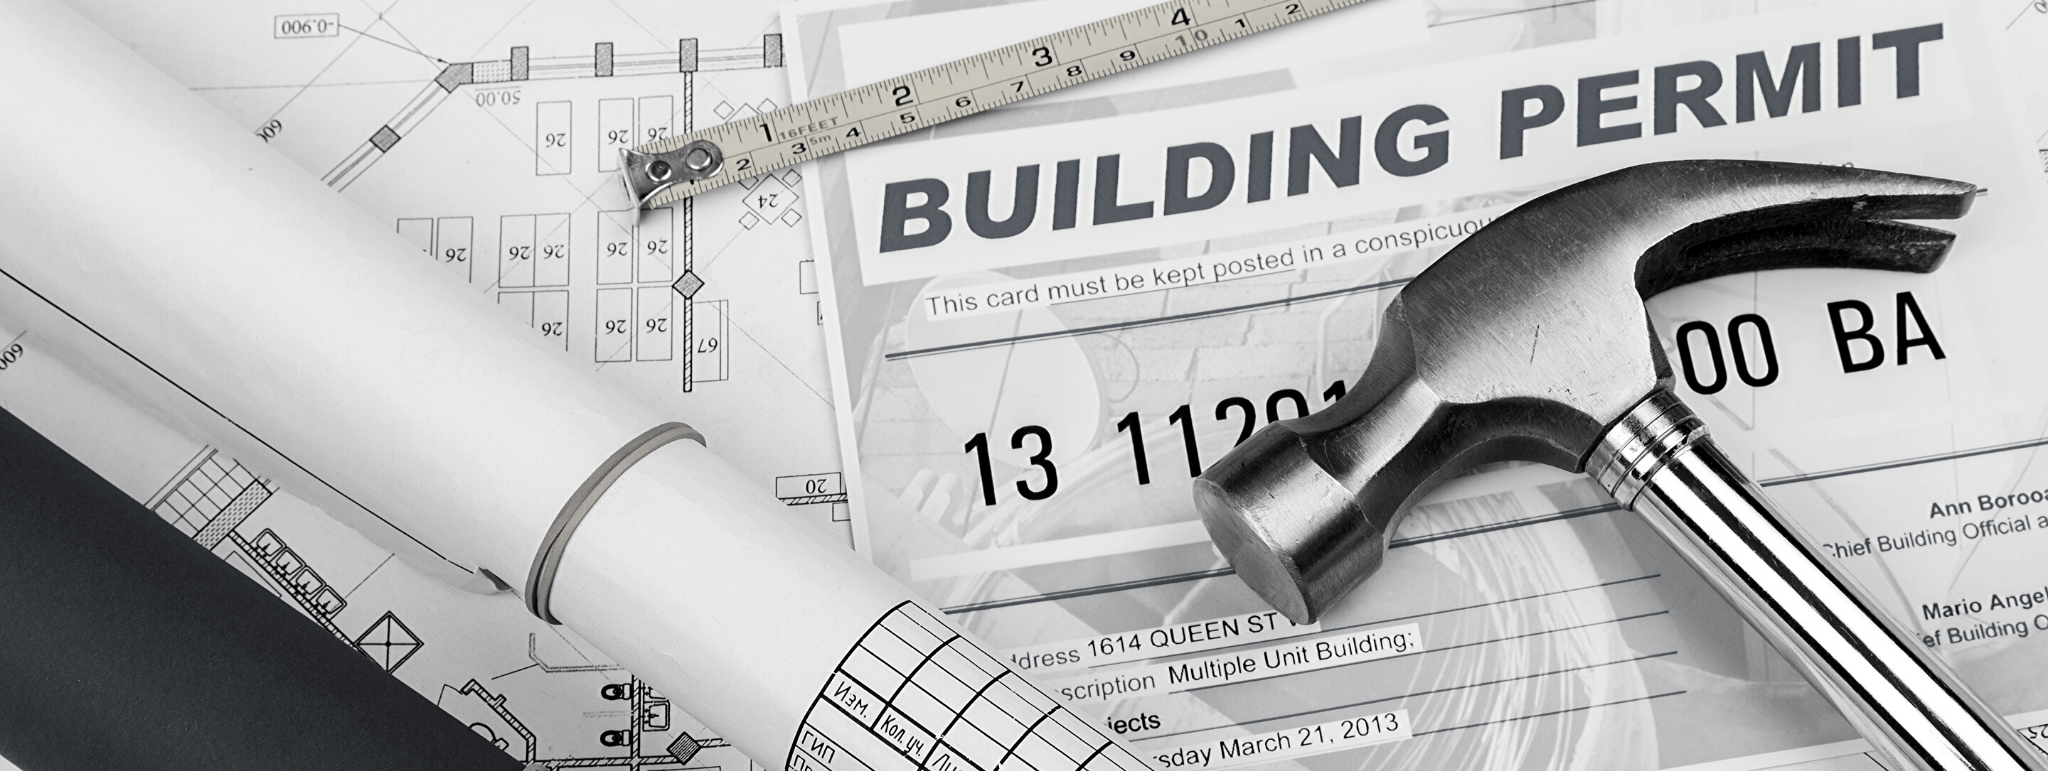 Building permit image with permits and a hammer